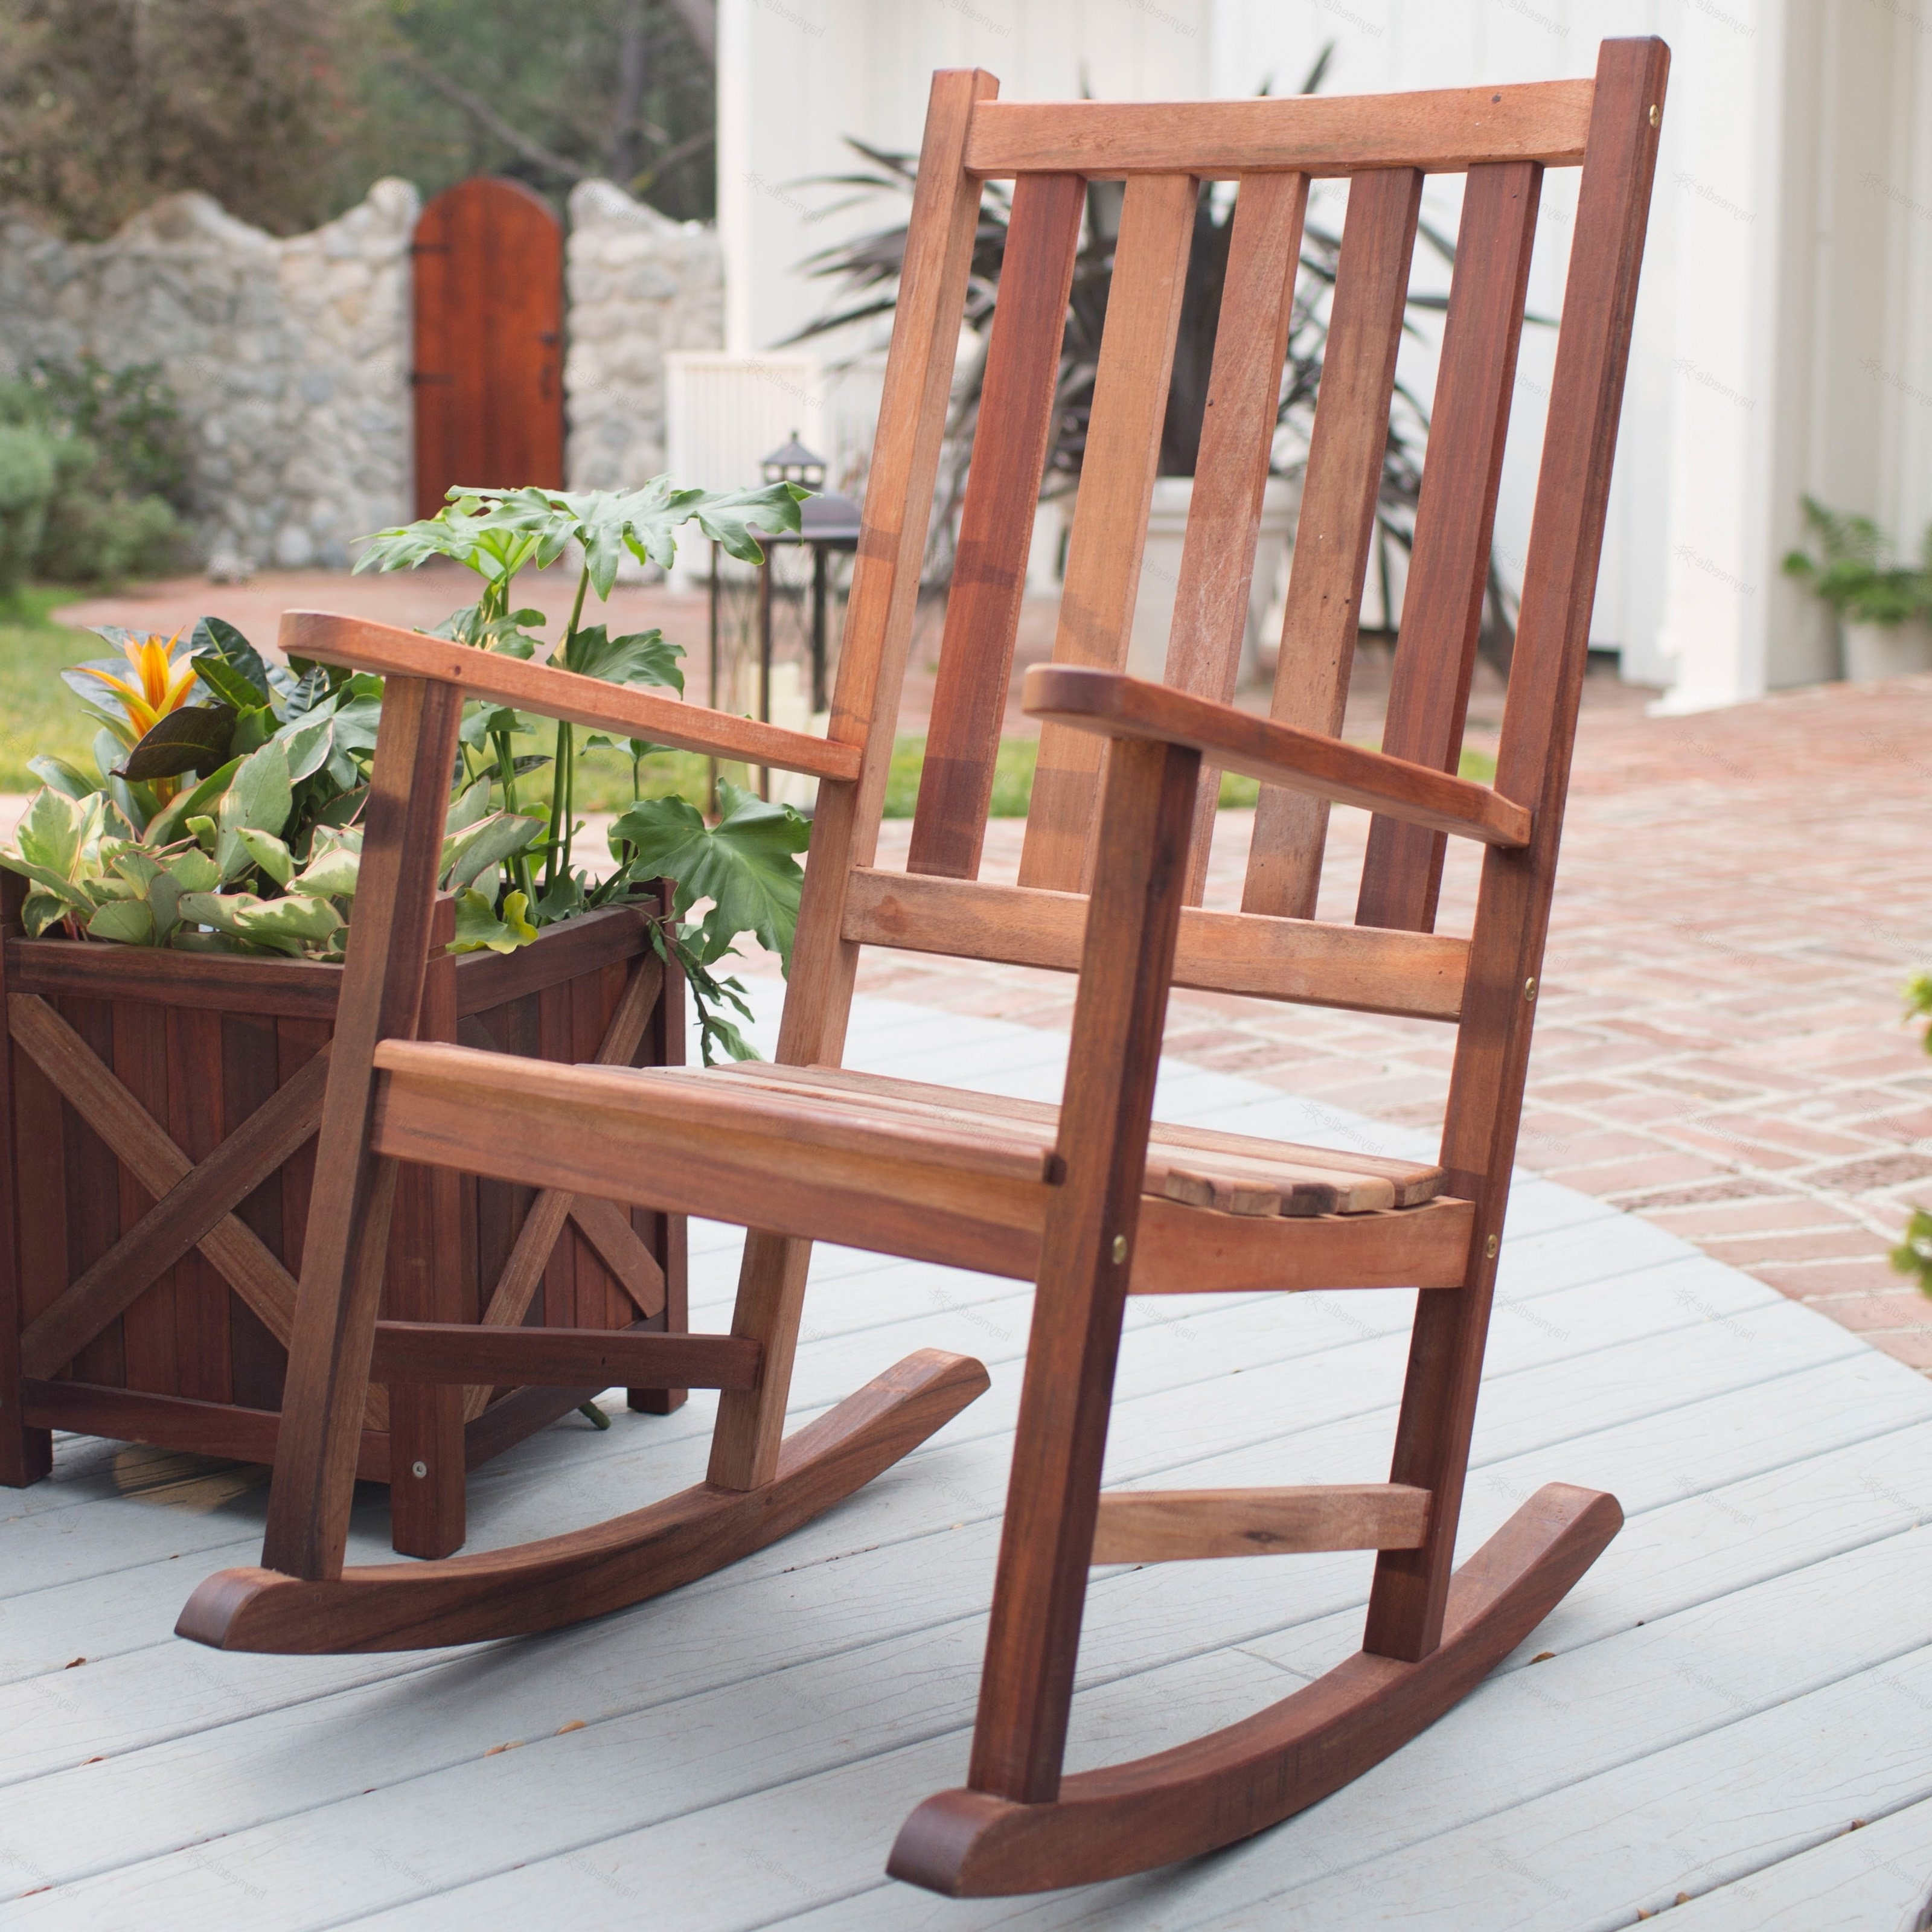 Patio Wooden Rocking Chairs For Preferred Decorating Patio Rocking Chairs Aluminum Rocking Chair Outdoor (View 11 of 15)